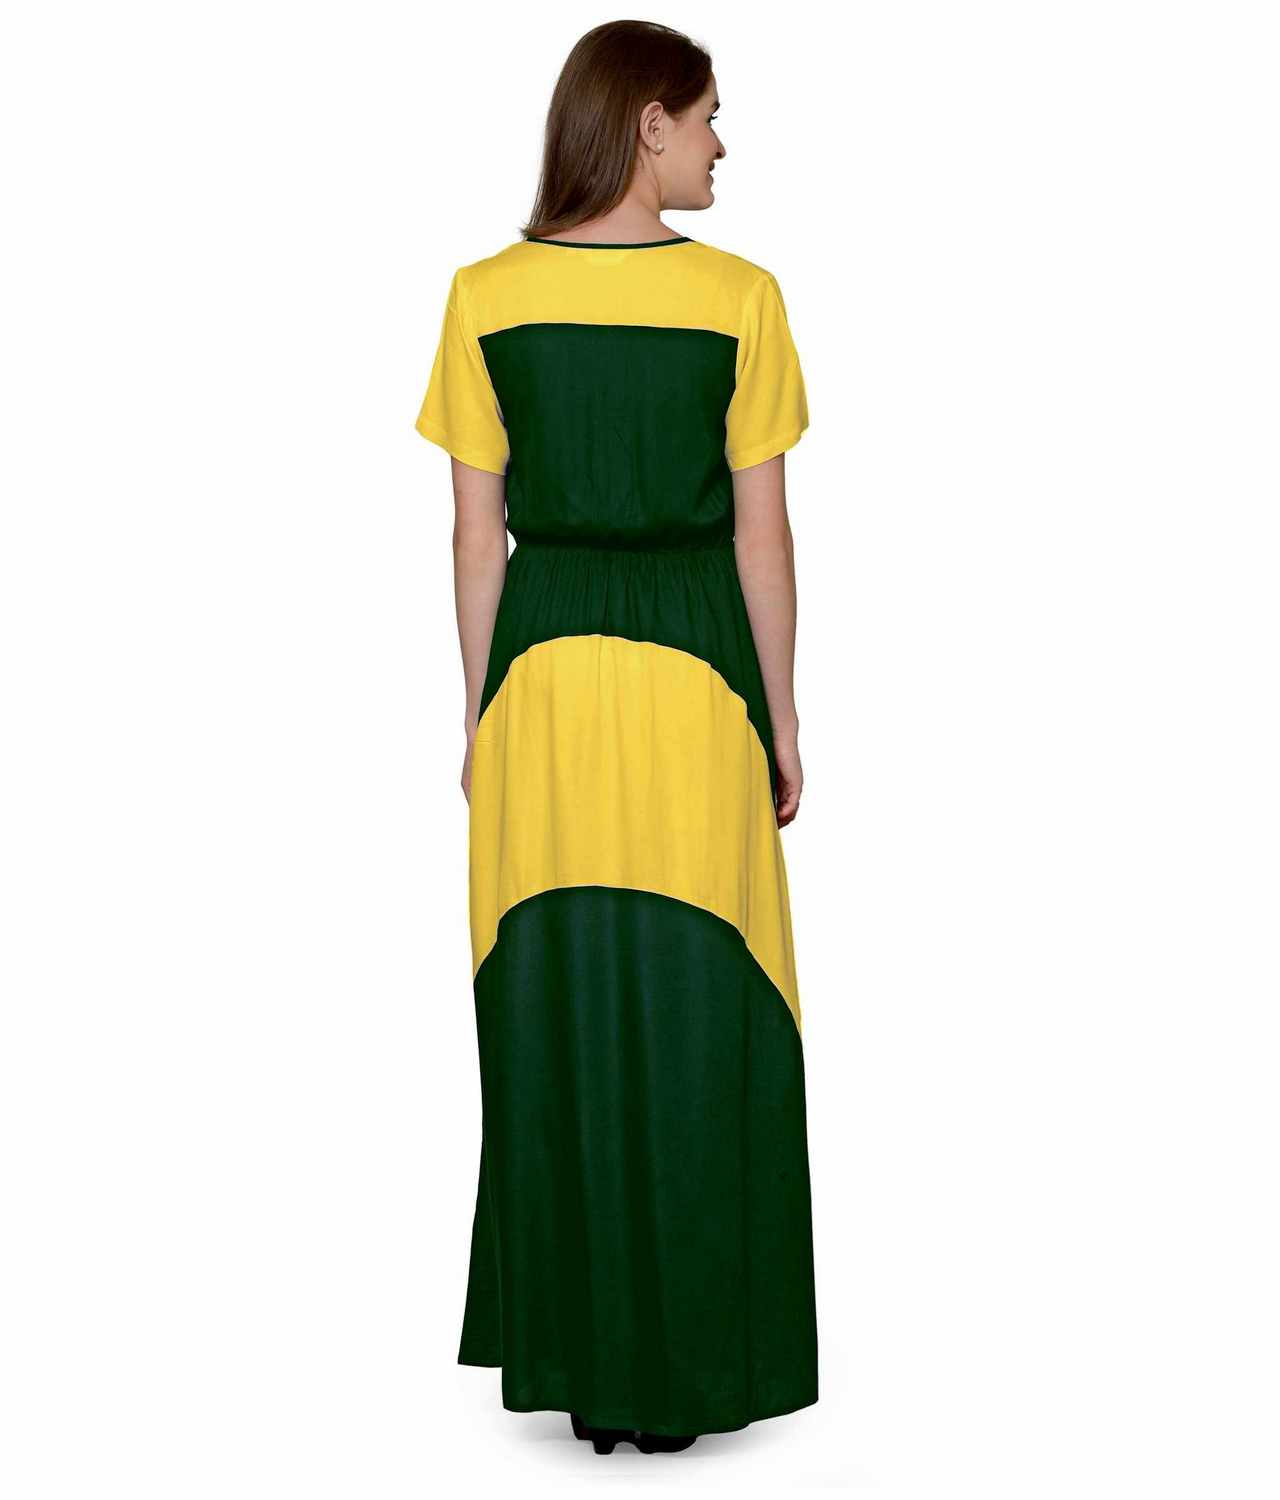 Color Block Slim Fit Maxi Dress Gown in Mustard:Bottle Green